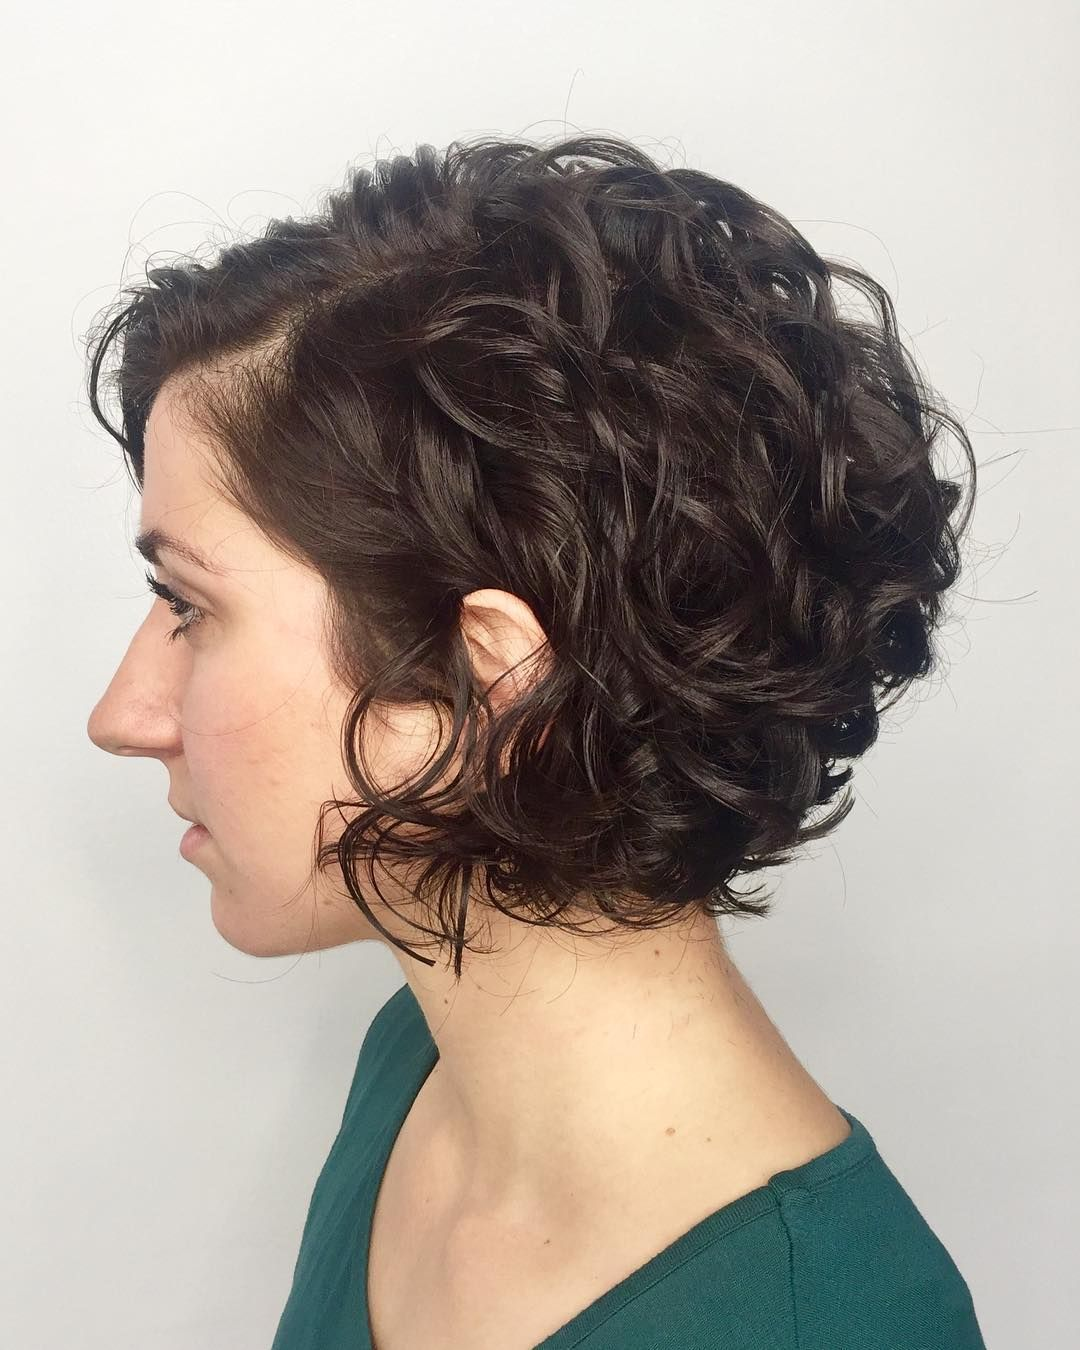 40 Stunning Curly Short Haircuts July 2019 Ig Collection Short Curly Haircuts Curly Hair Styles Haircuts For Curly Hair